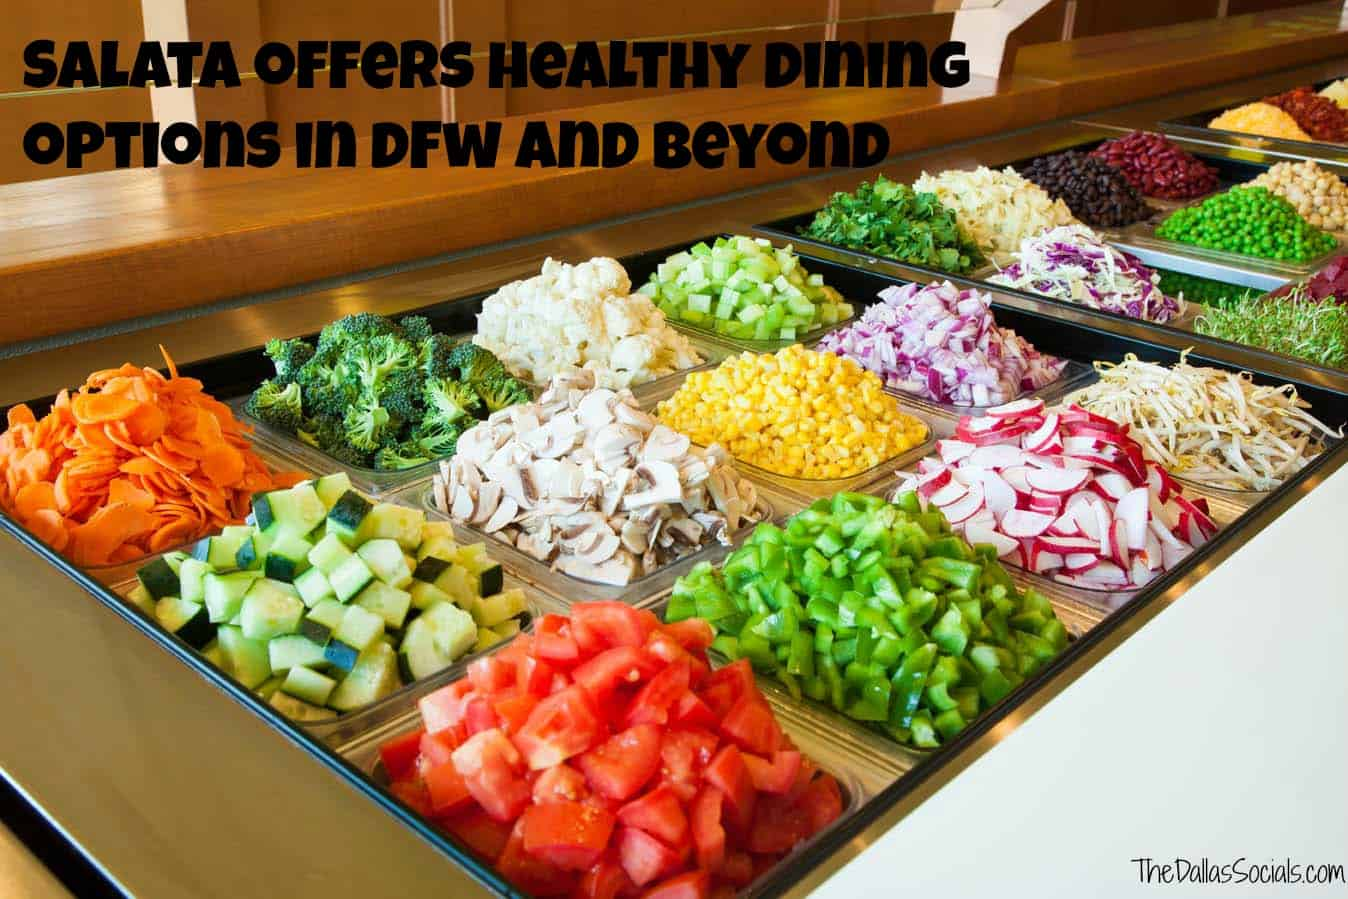 Salata Offers Healthy Dining Options in DFW and Beyond